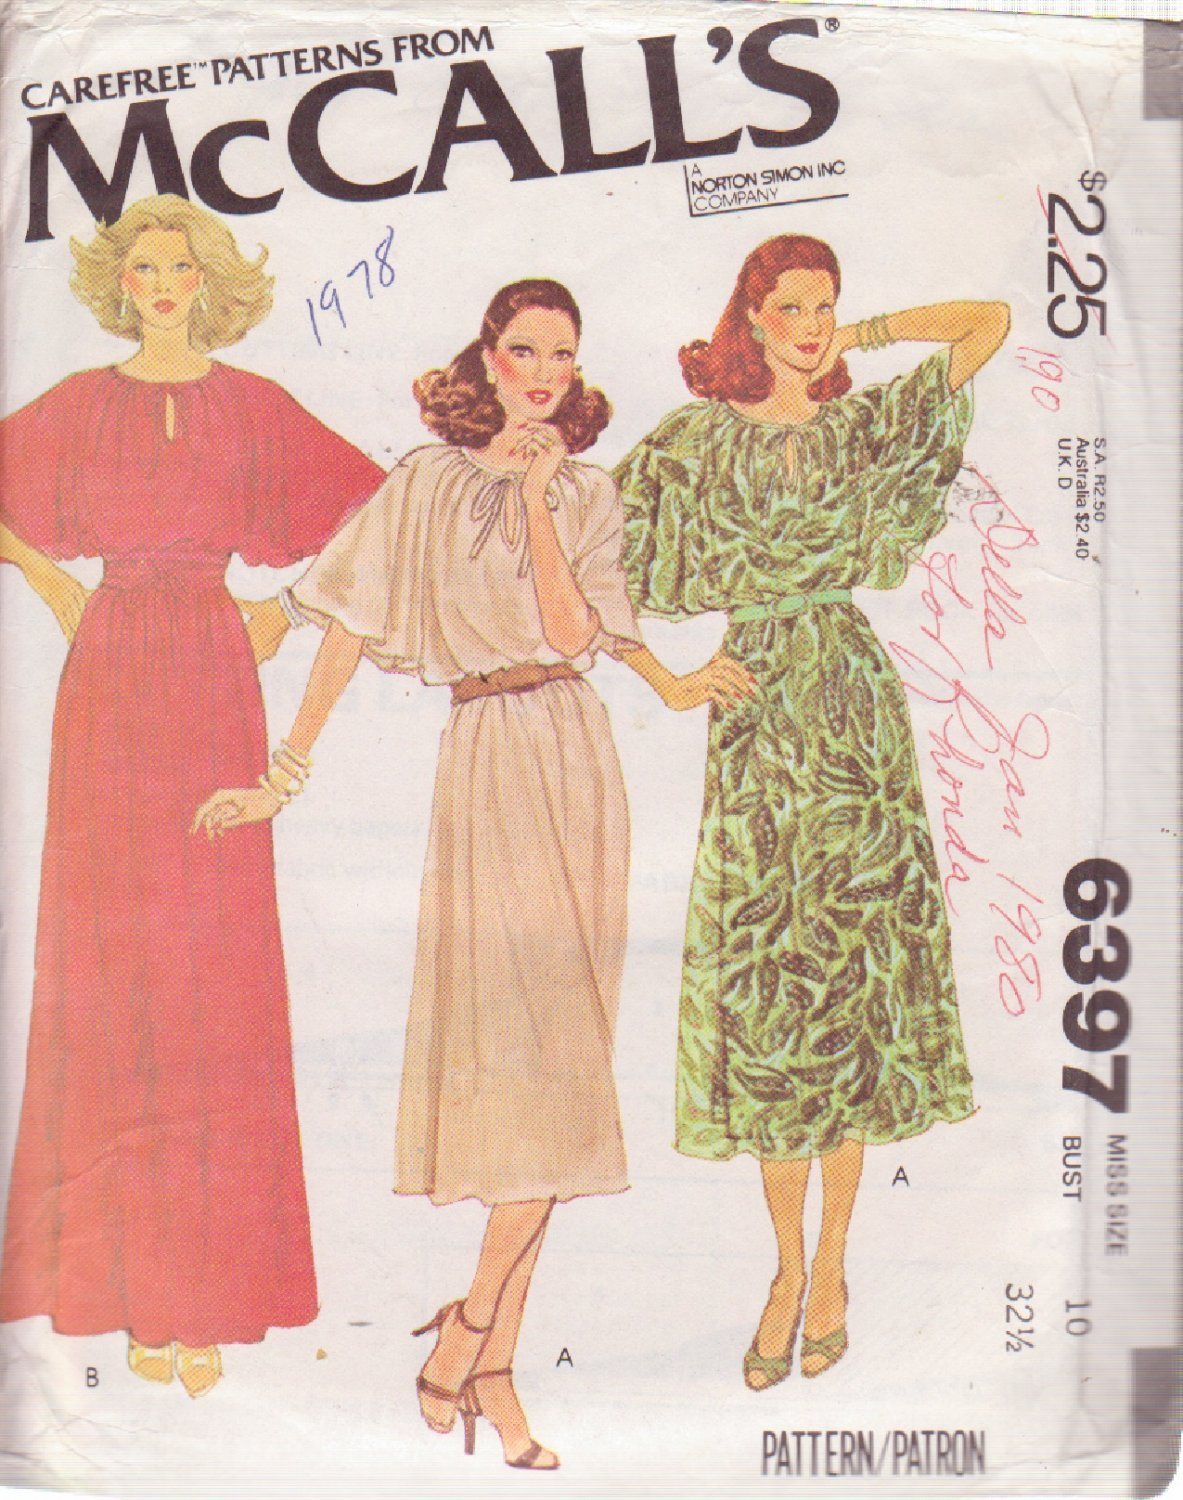 McCALL'S PATTERN 6397 SIZE 10 MISSES' DRESS IN 2 LENGTHS